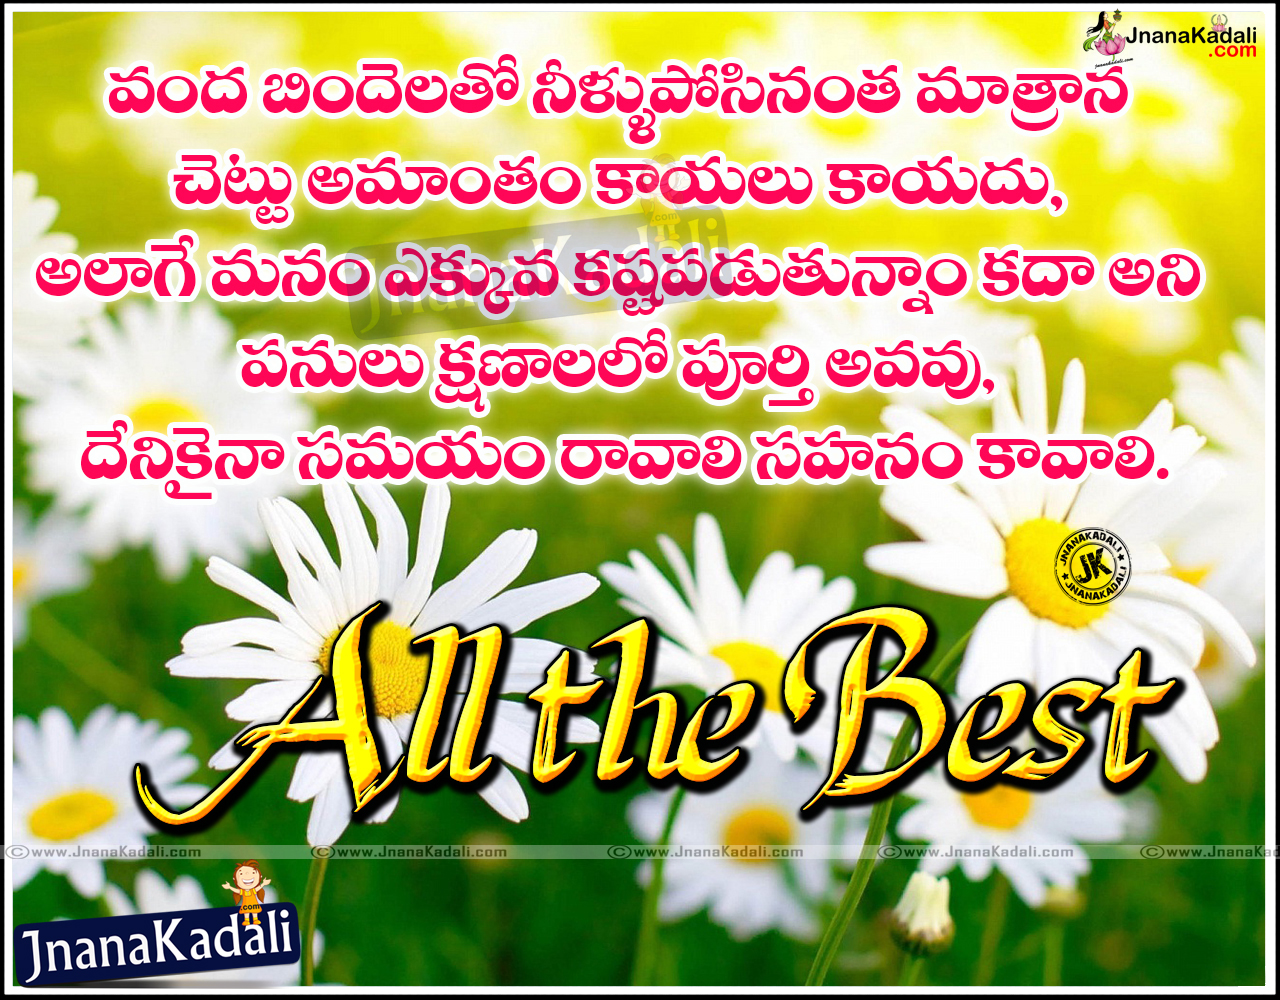 All The Best Wishes Telugu Greetings SMS Quotes hd Images